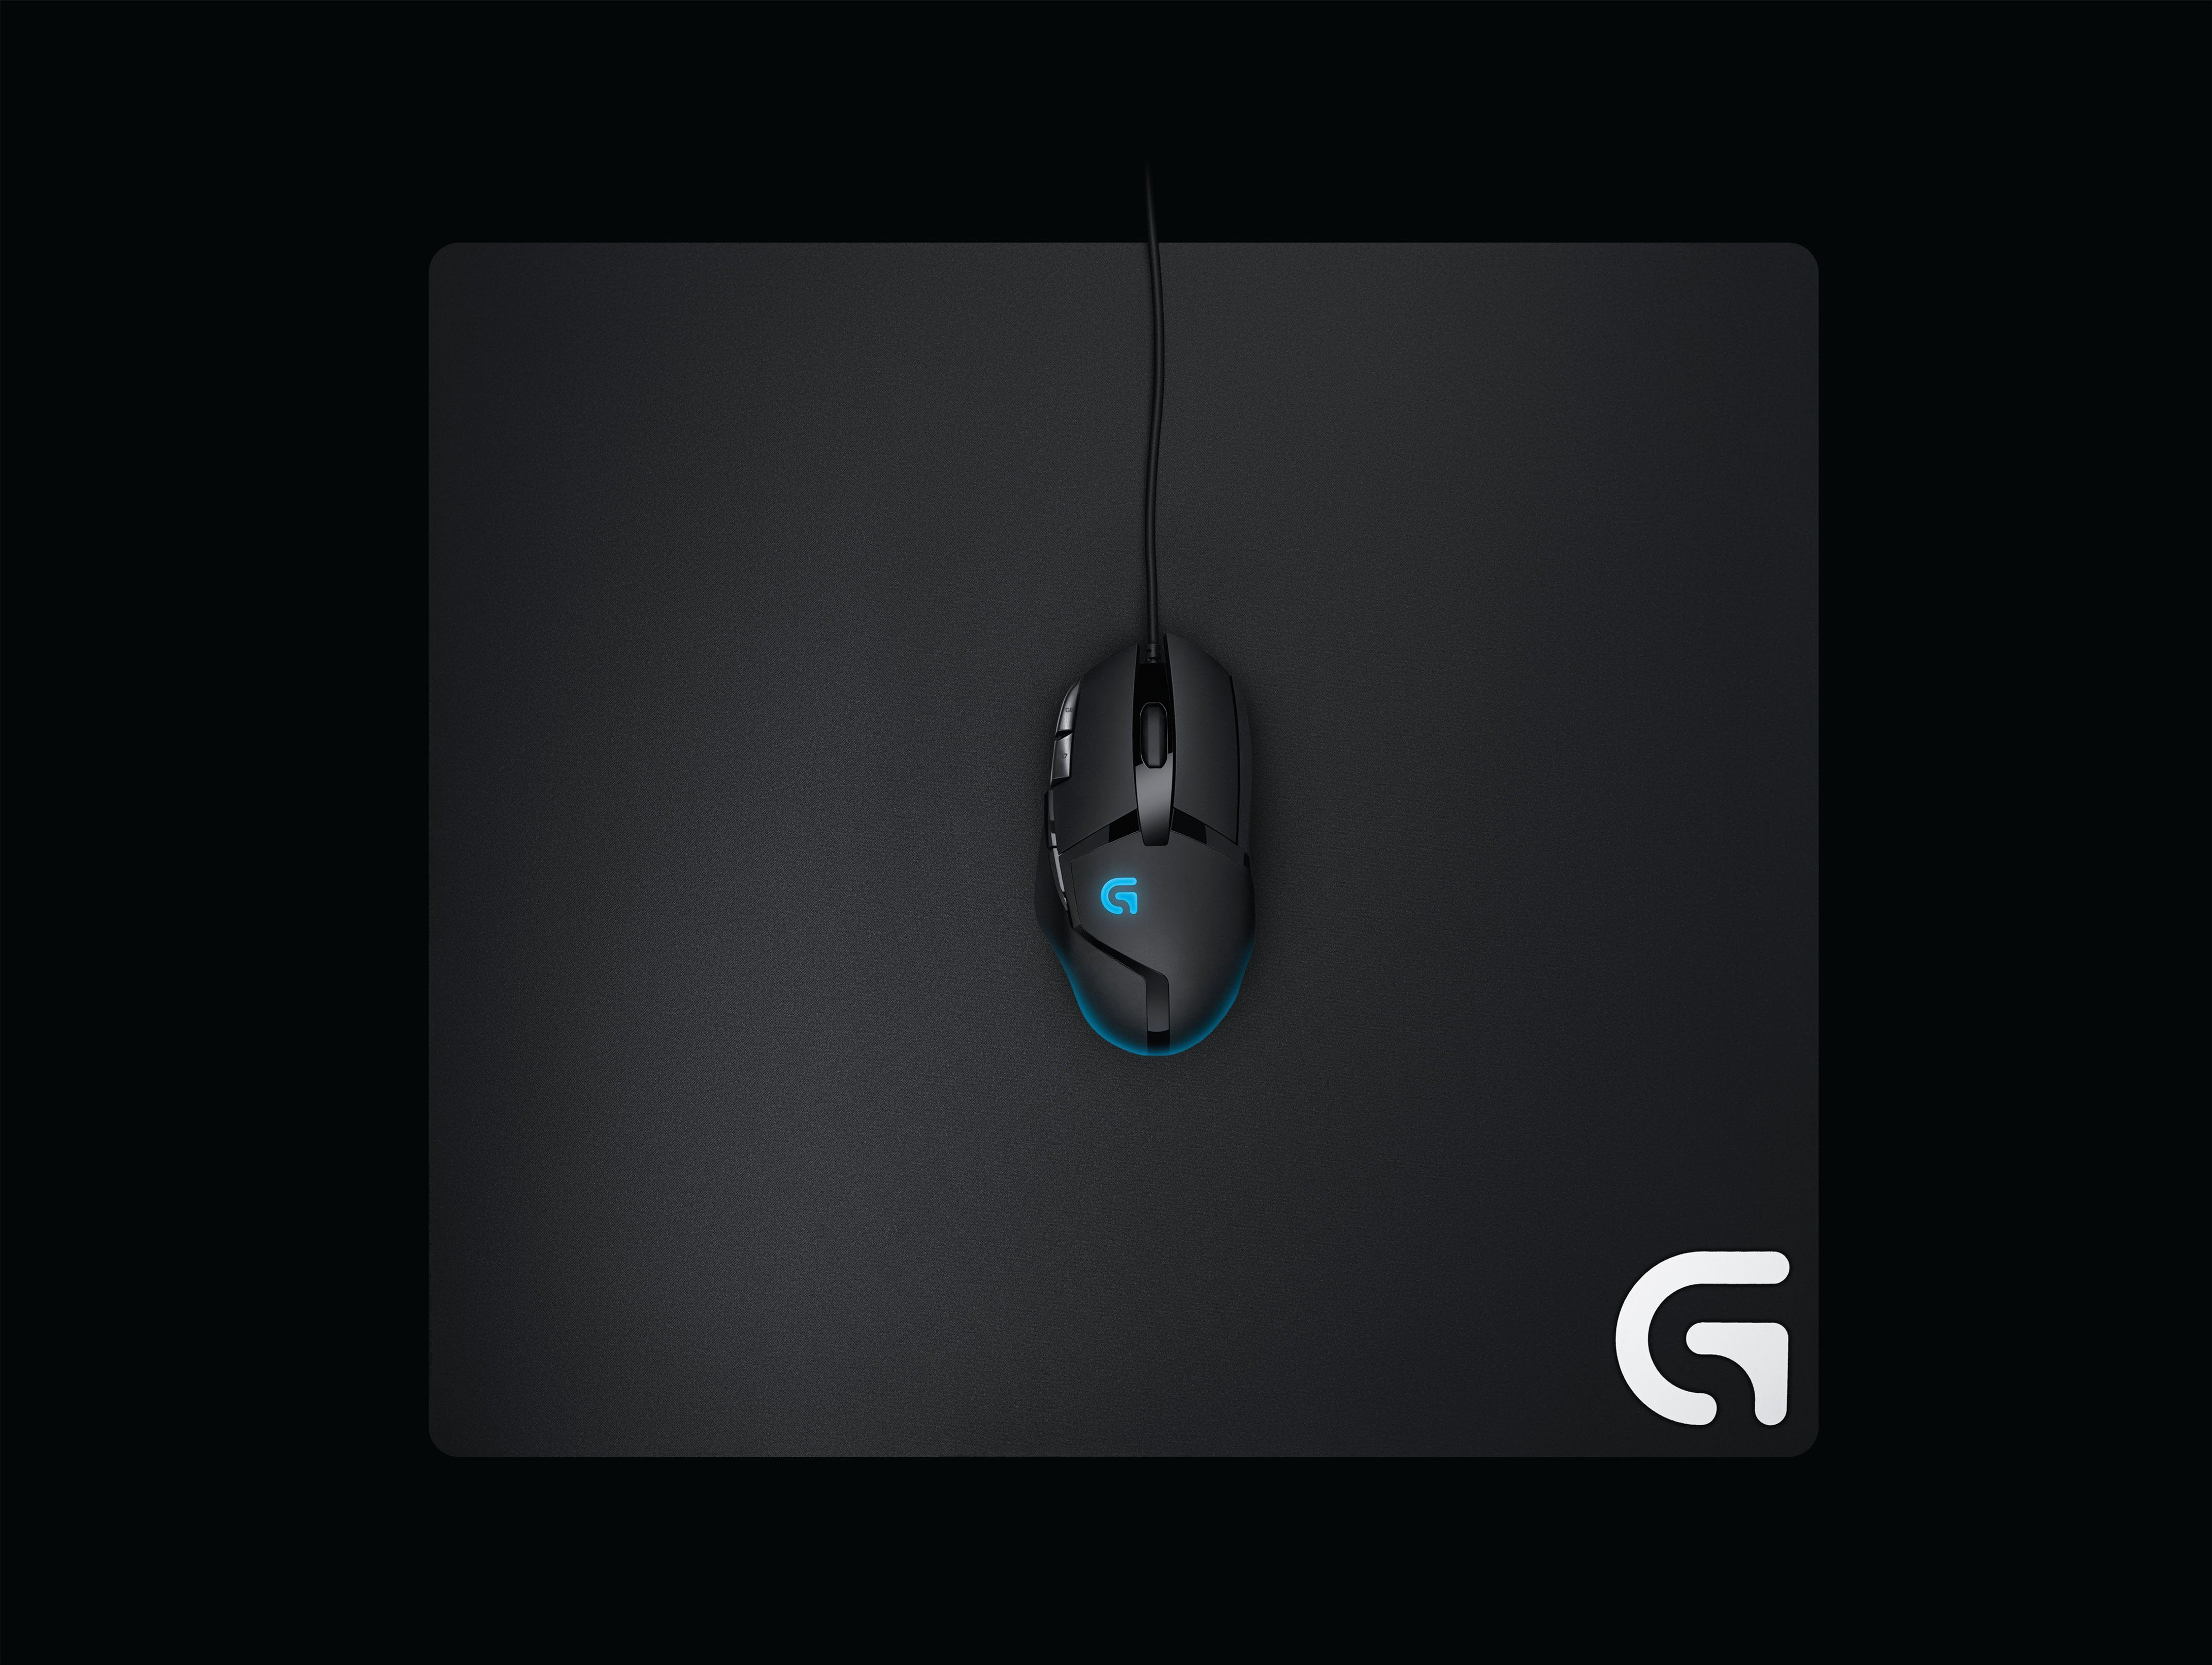 Logitech Games Gaming Mouse Pad »G640 Cloth Mauspad«